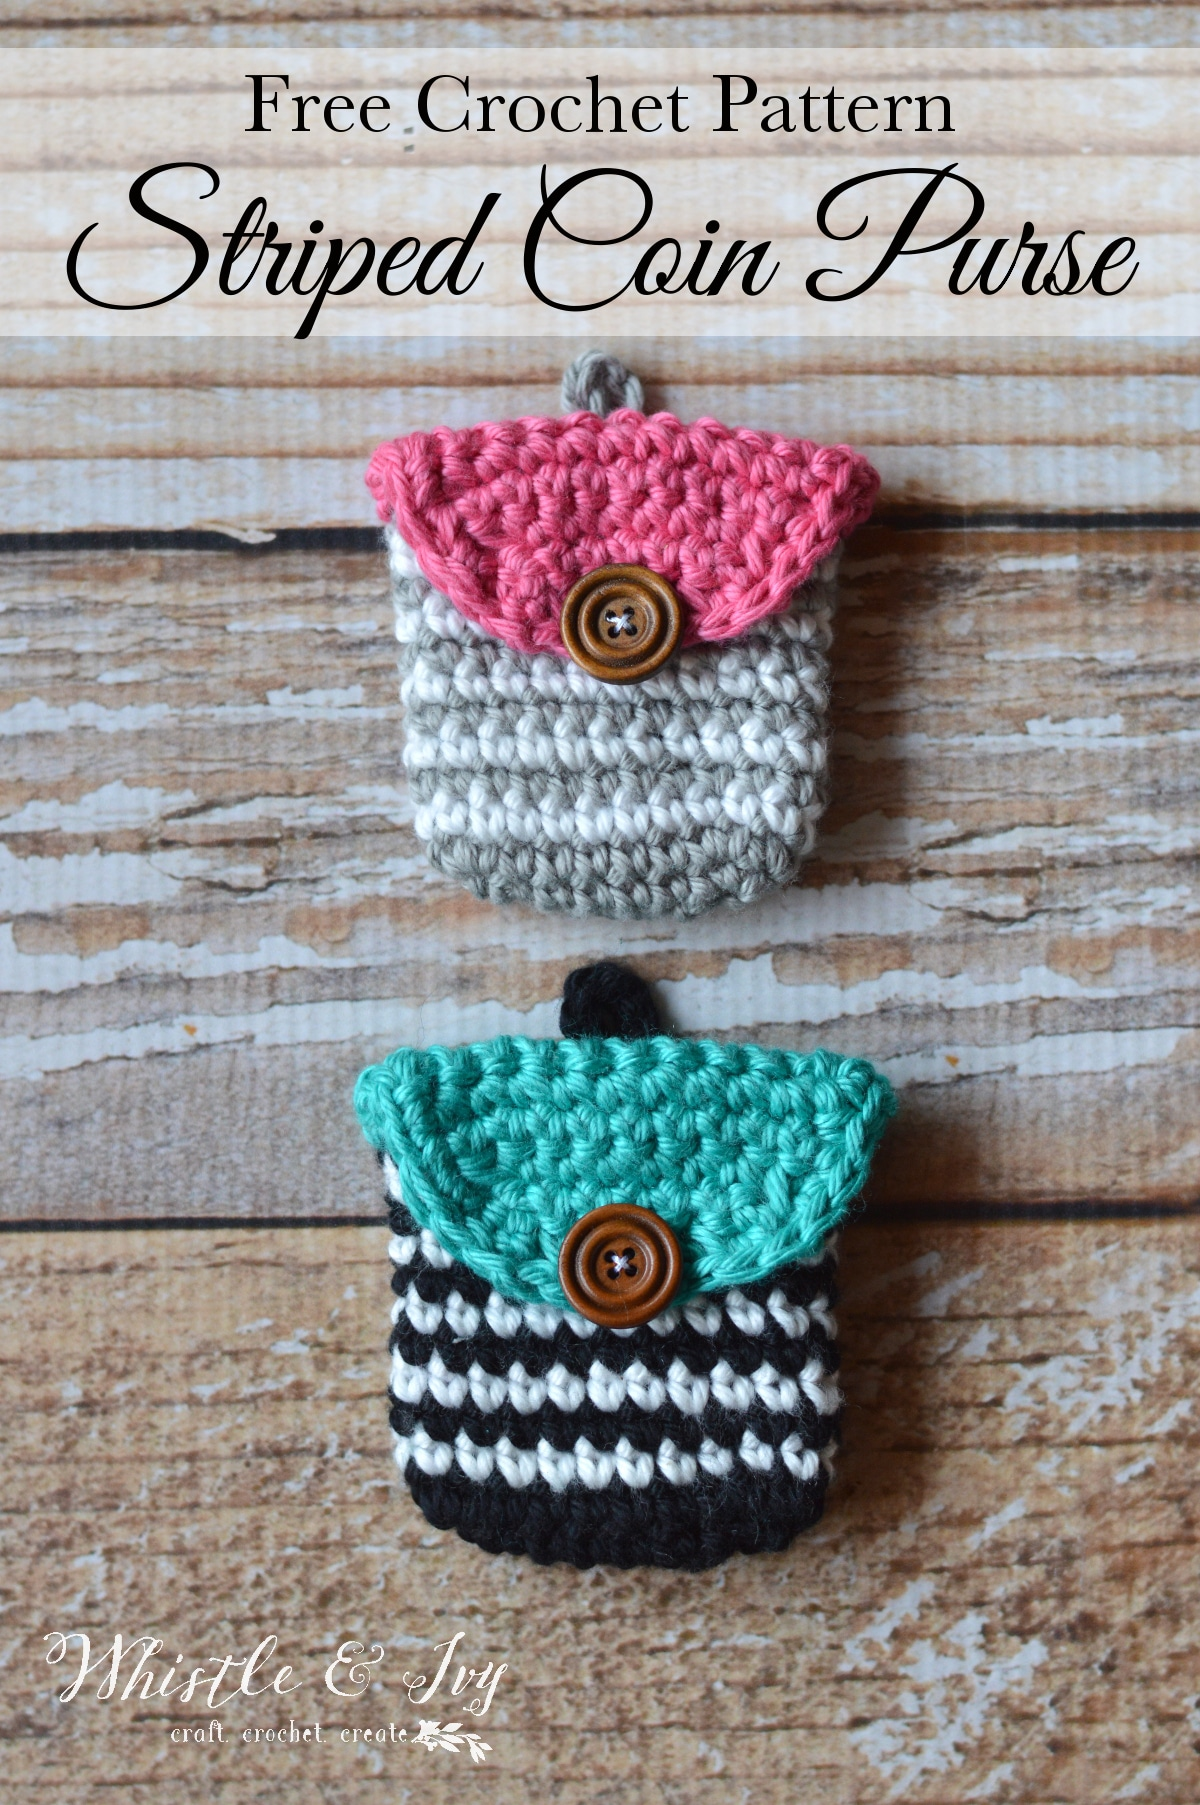 Free Crochet Shell Purse Pattern : Crochet Striped Coin Purse - Whistle and Ivy